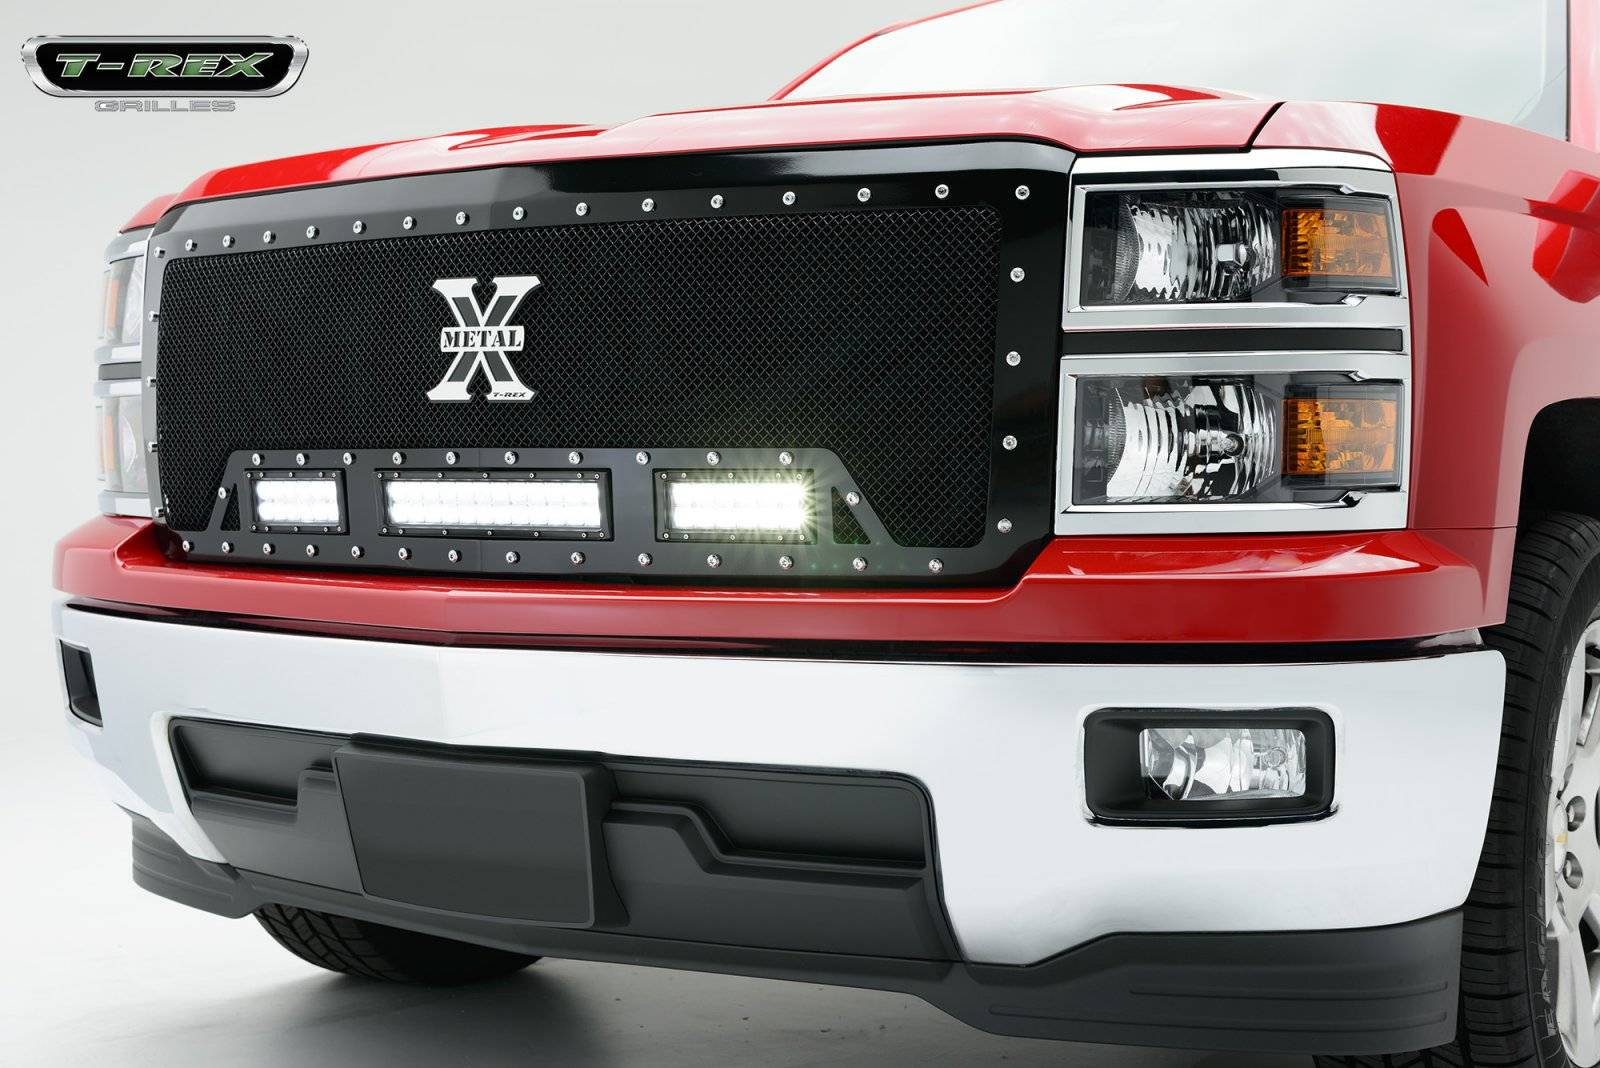 "T-REX Chevrolet Silverado TORCH Series LED Light Grille 2 - 6""  and 1 - 12"" LED Bar, Formed Mesh Grille, Main, Replacement, 1 Pc, Black Powdercoated Mild Steel, Replaces OE Grille - Pt # 6311181"